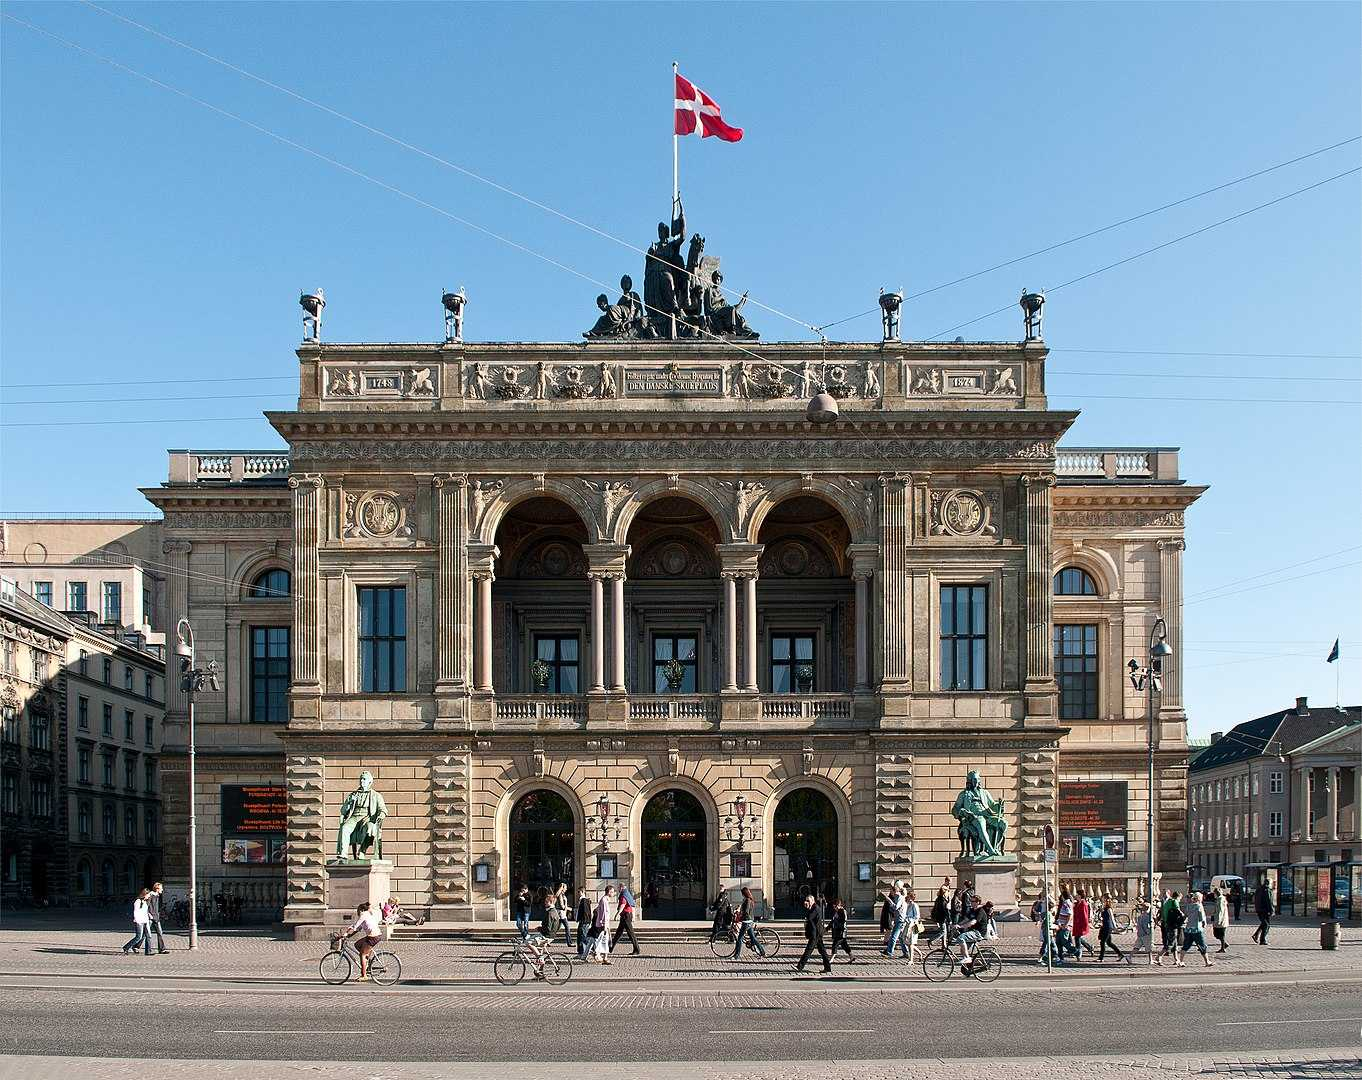 By Axel Kuhlmann - Kopenhagen, CC BY 2.0, https://commons.wikimedia.org/w/index.php?curid=17987026